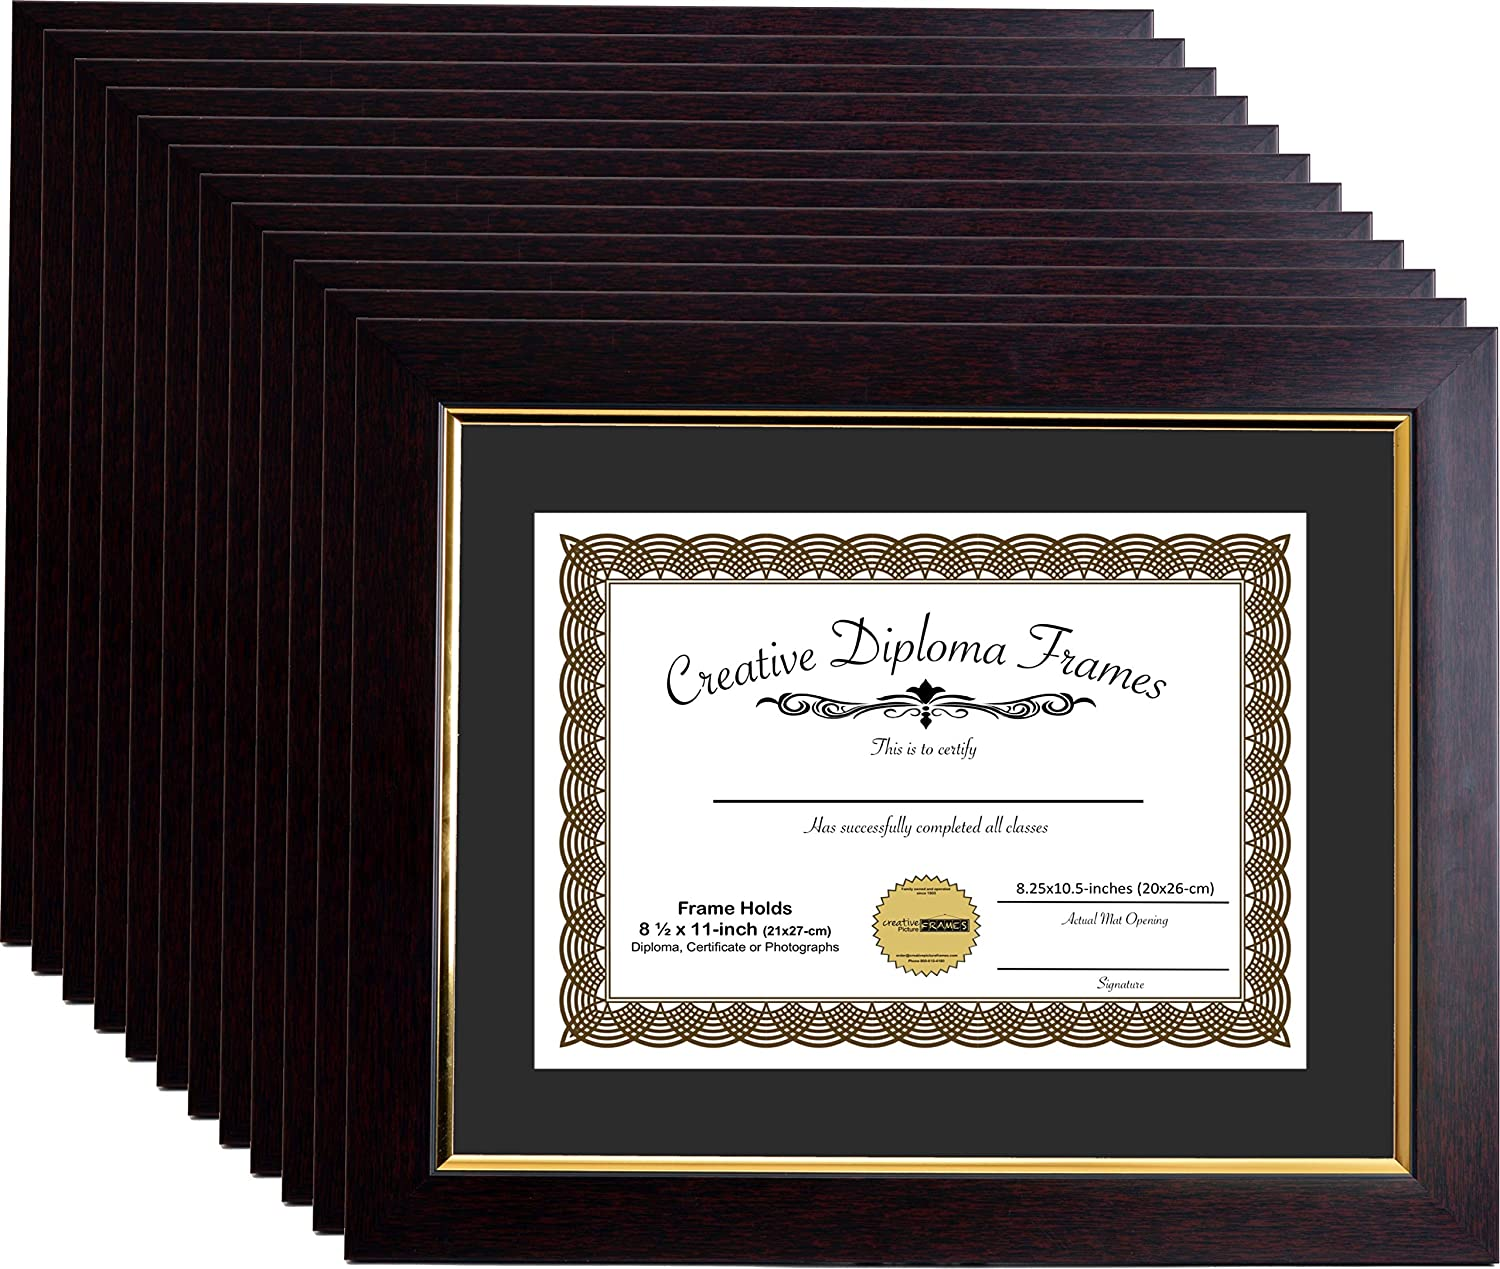 11x14-inch Matted Eco Mahogany Finish Diploma Frame Gold Lip with Black//White Core Mat Holds 8.5x11-inch Media mhg024 CreativePF with Installed Hangers